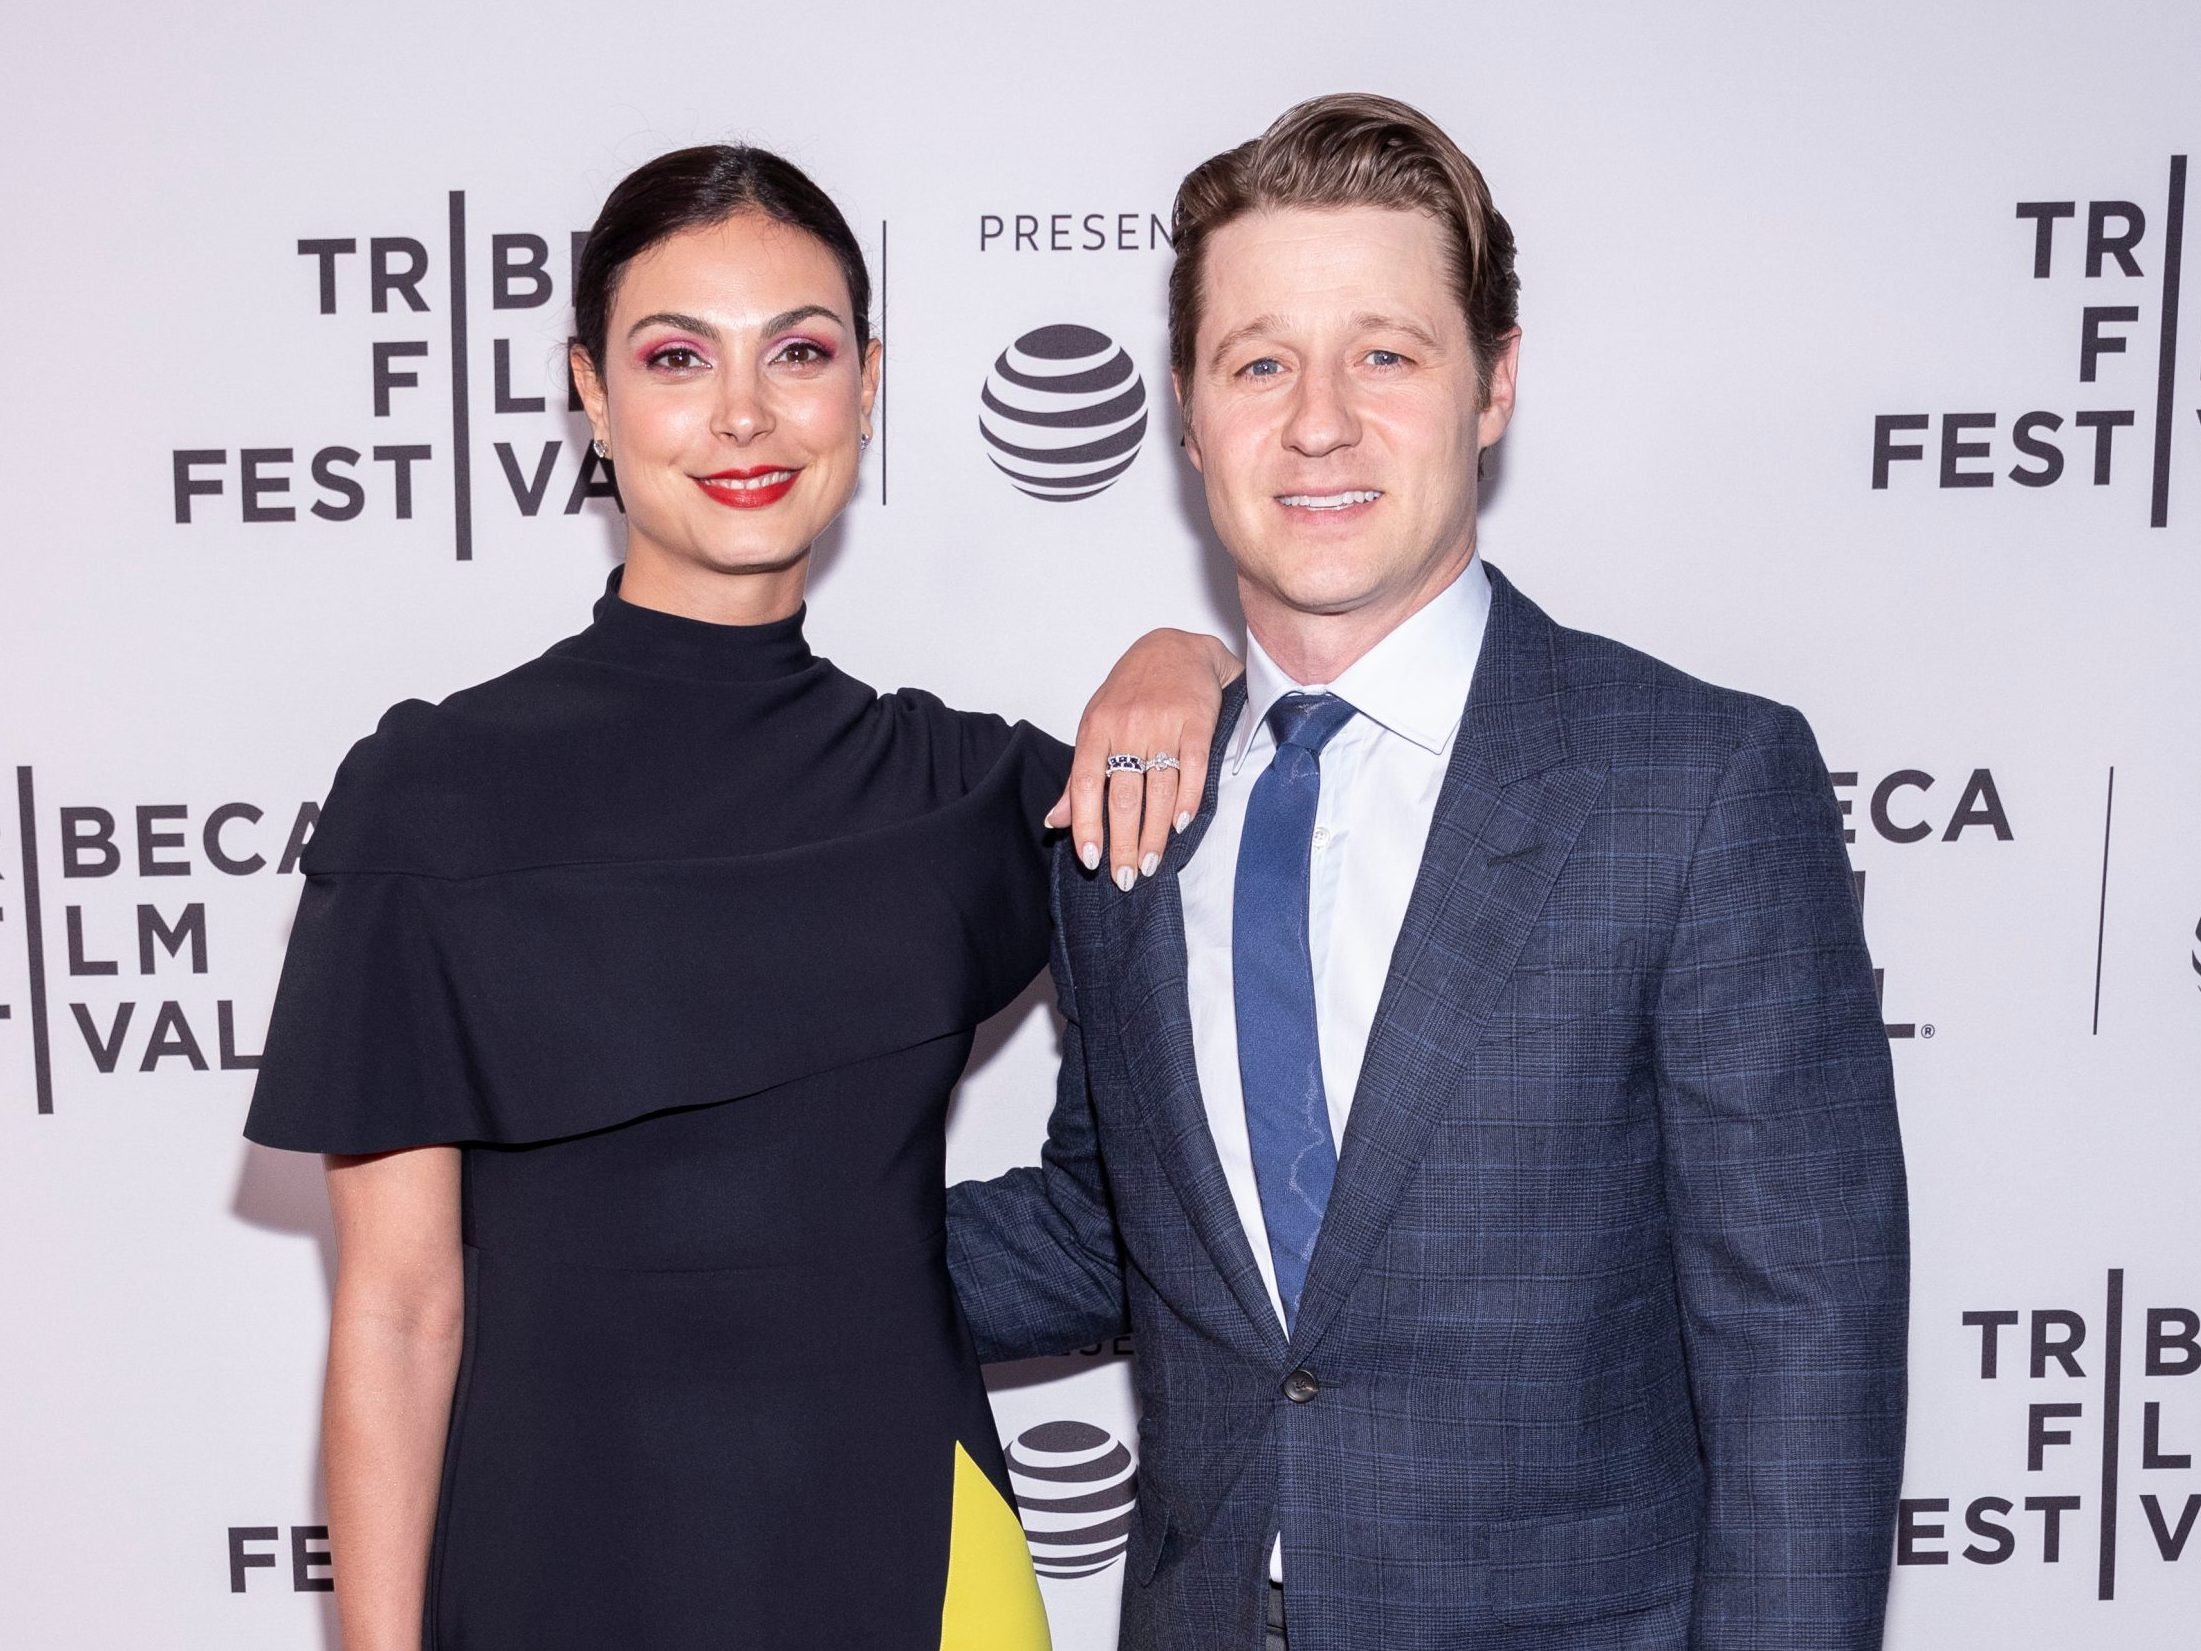 Morena Baccarin and Ben McKenzie smile at a red carpet event.